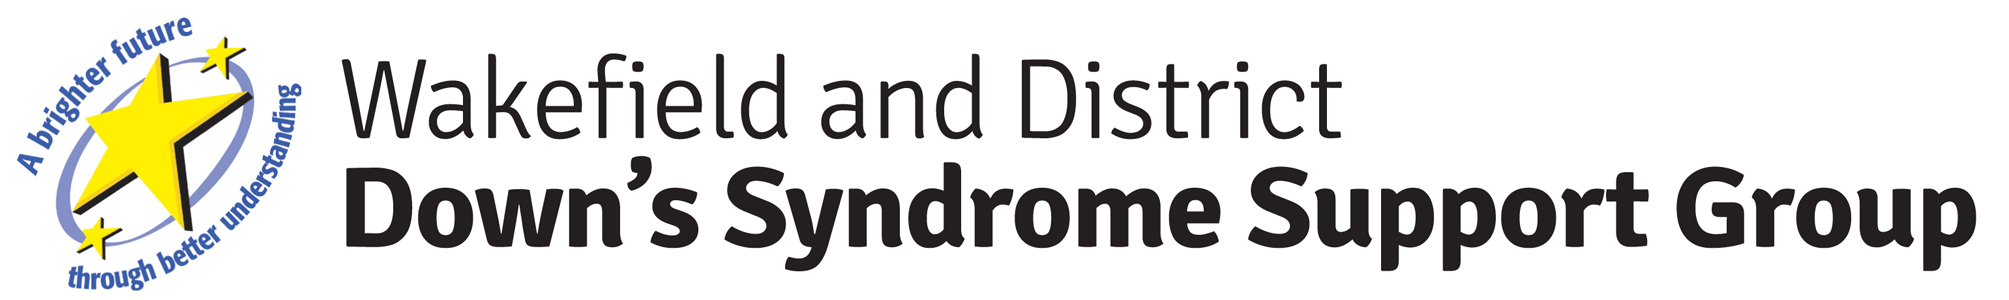 Wakefield & District Down's Syndrome Support Group